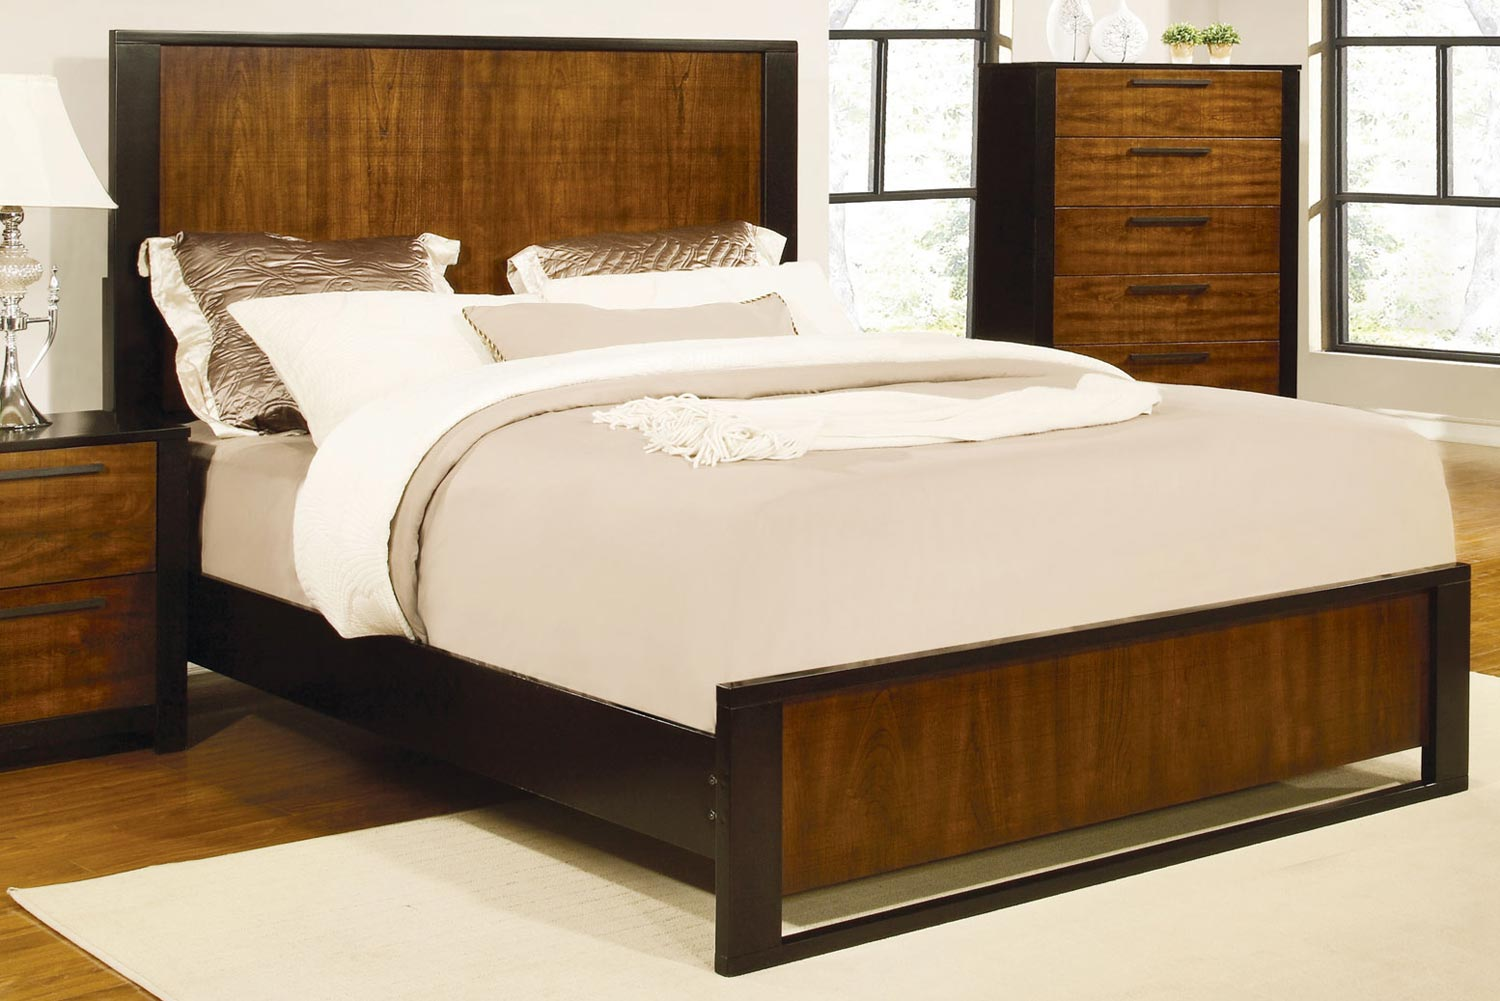 Coaster Coronado Bed - Natural Cherry/Cappuccino